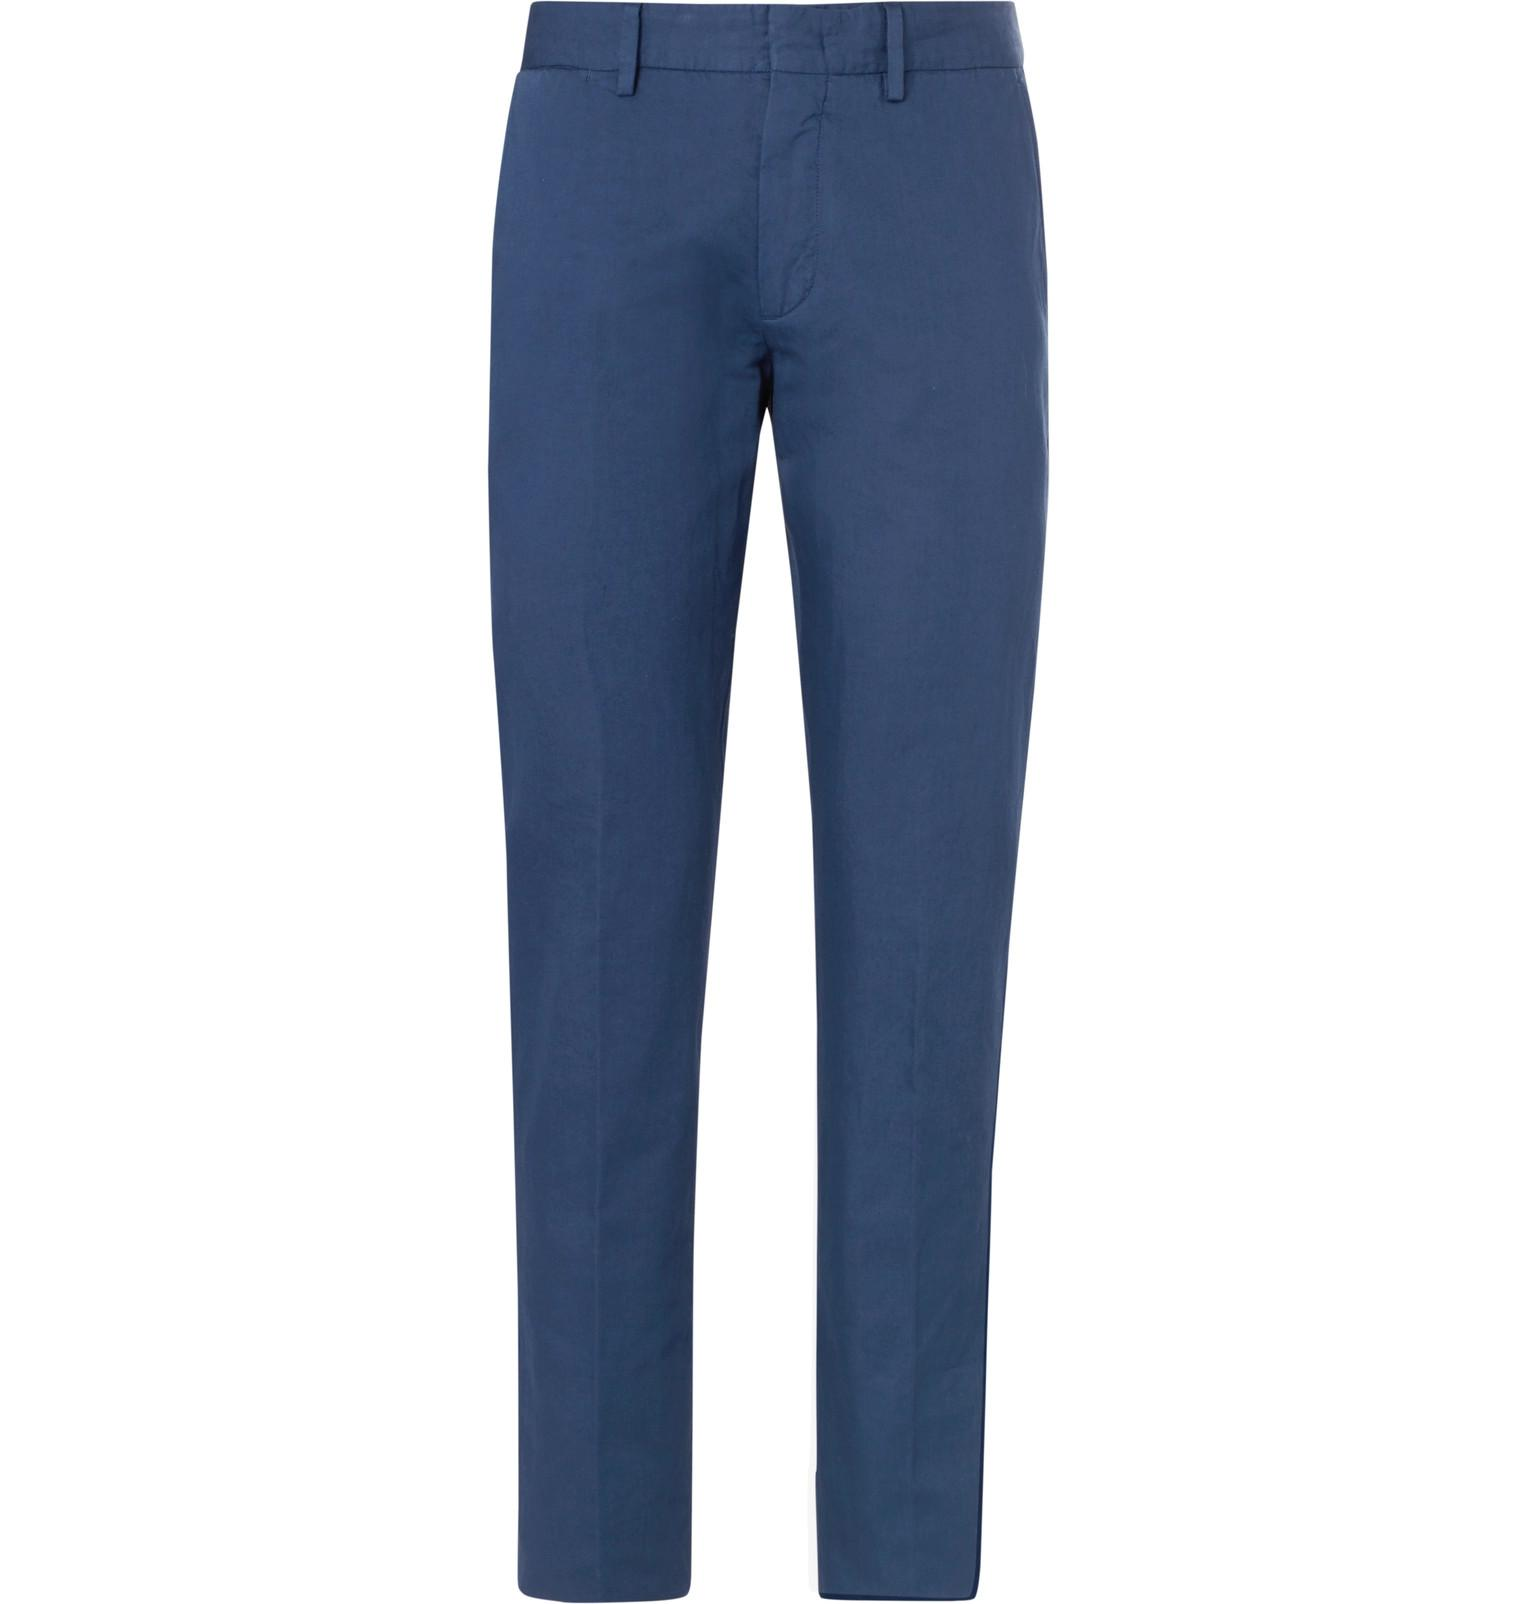 Slim-fit Cotton And Linen-blend Twill Trousers Ermenegildo Zegna Popular For Sale Clearance Finishline Footlocker Pictures Sale Online Discount Aaa LiPfa6vw